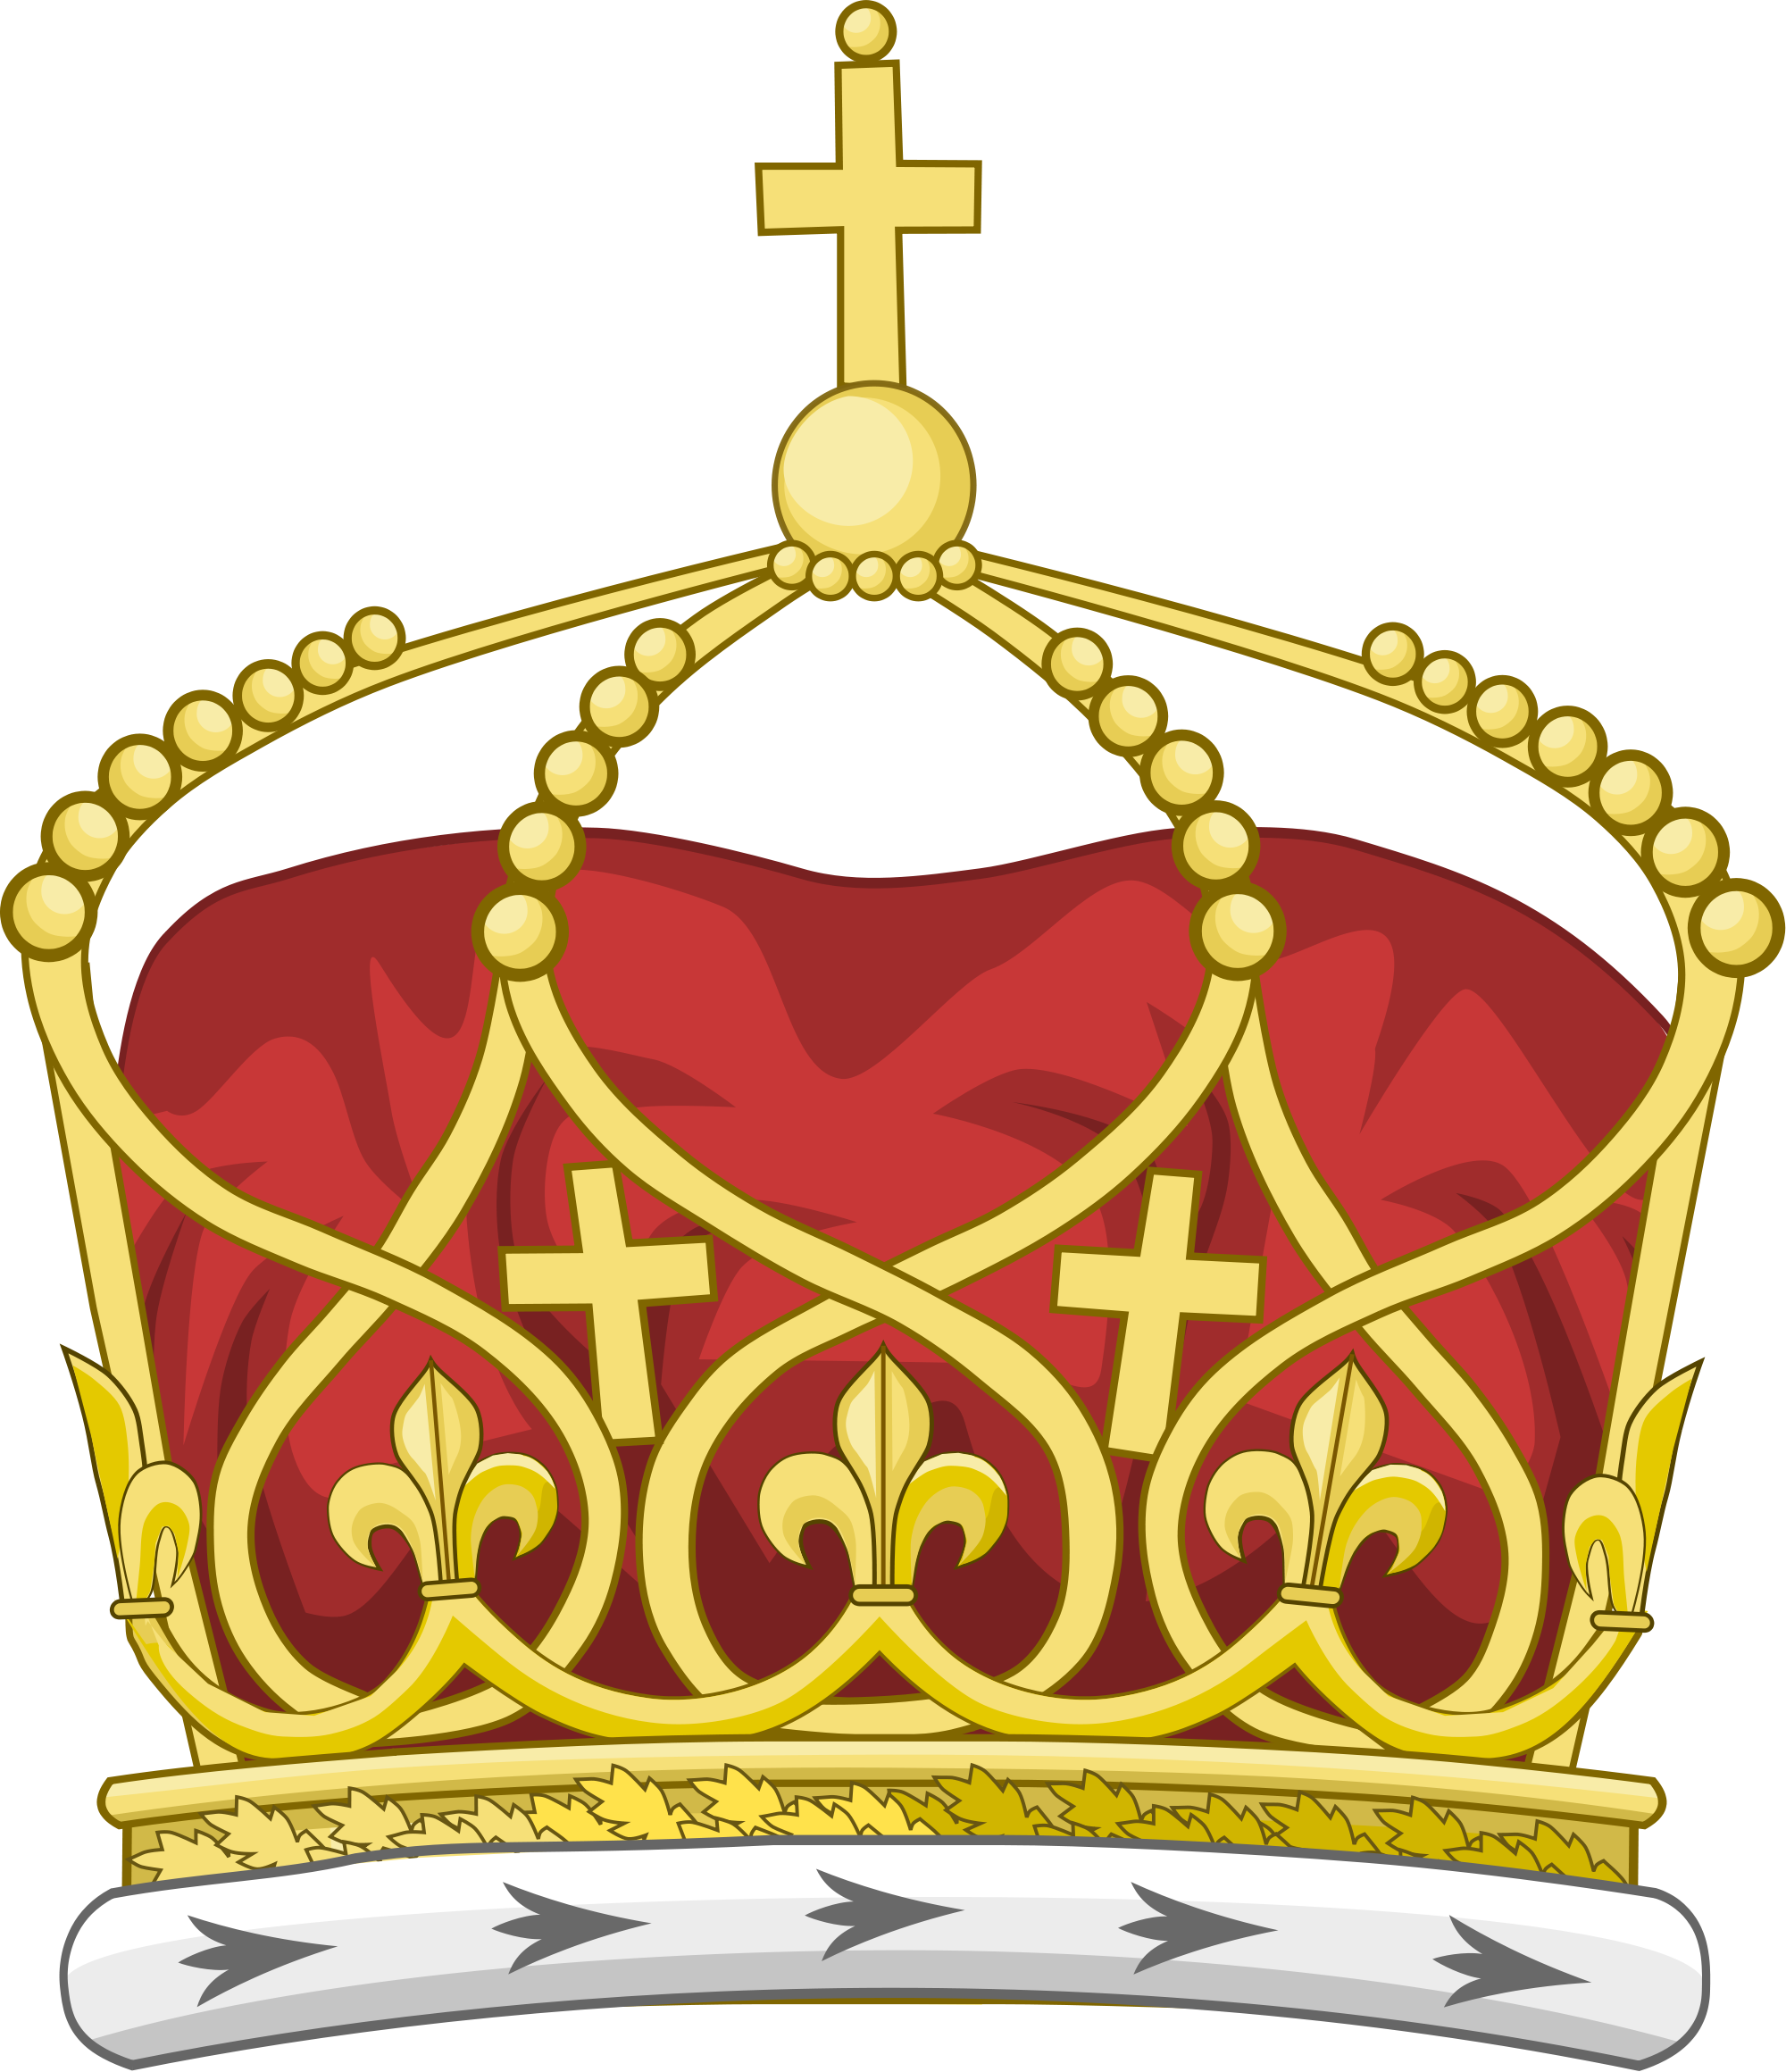 His hers crown clipart banner royalty free library Famous King And Queen Crown Wall Decor Composition - The Wall Art ... banner royalty free library